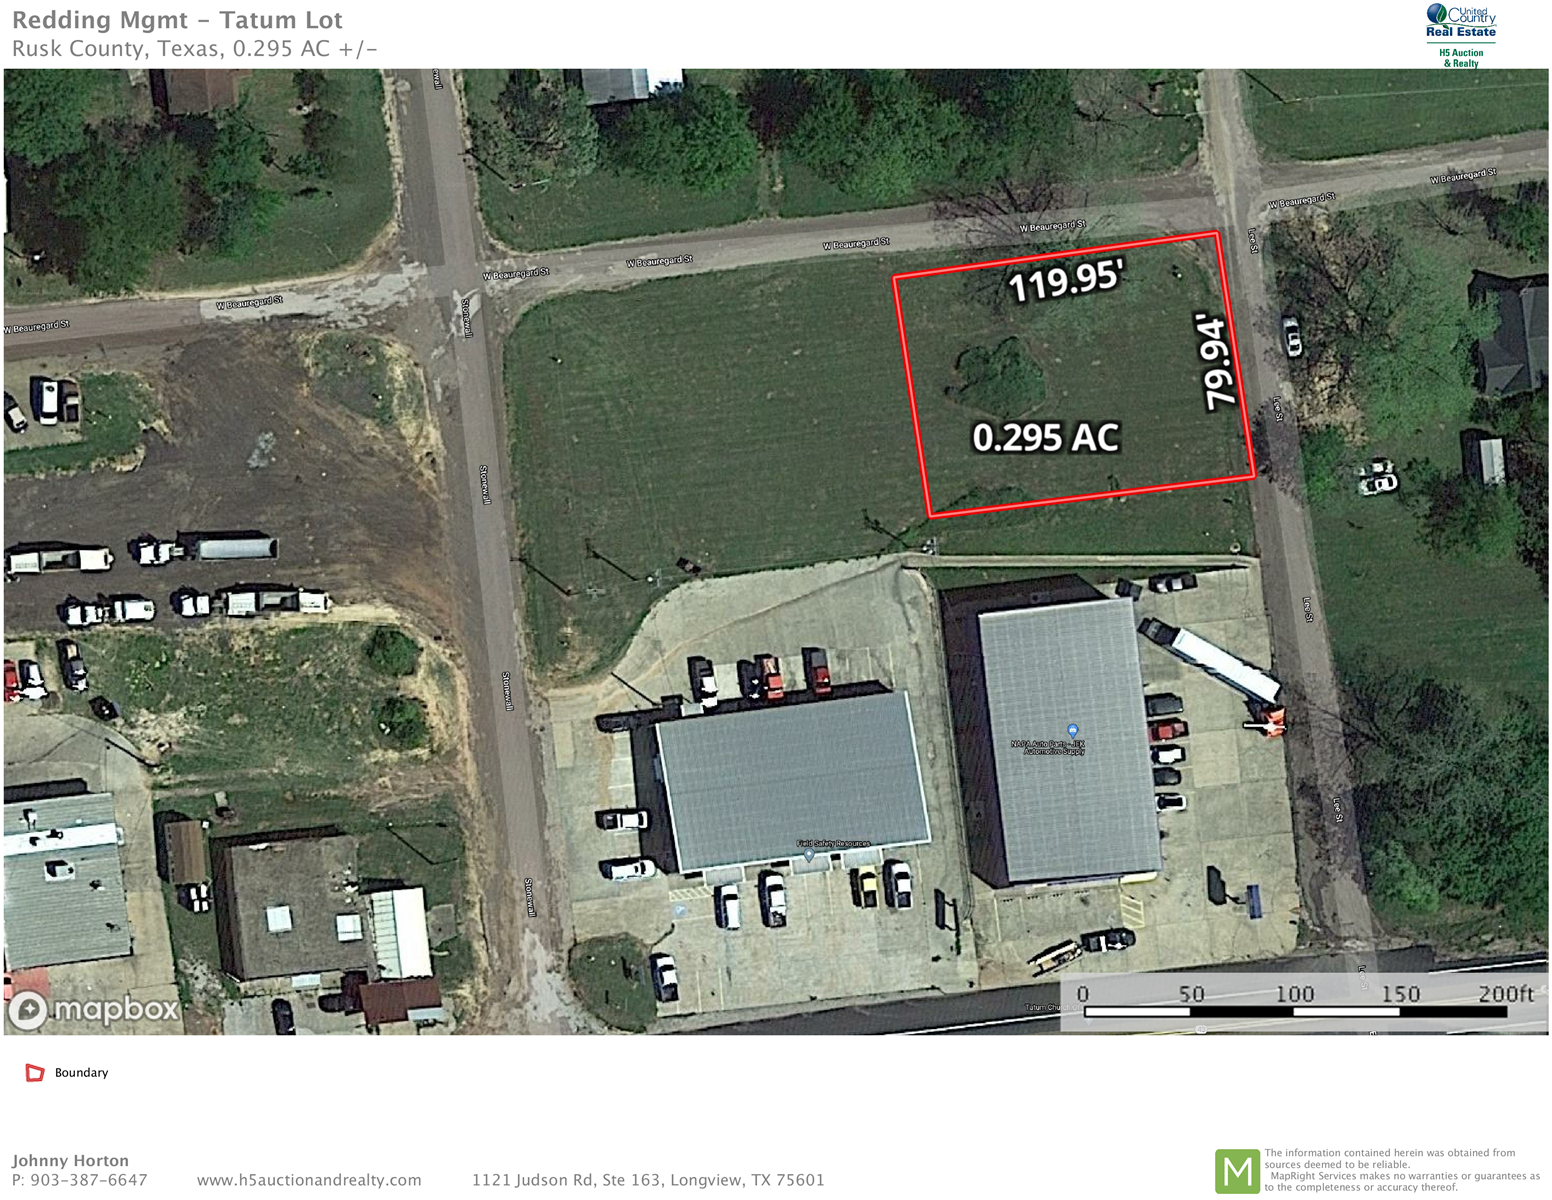 Auction - Buildable lot Tatum East Texas Rusk County